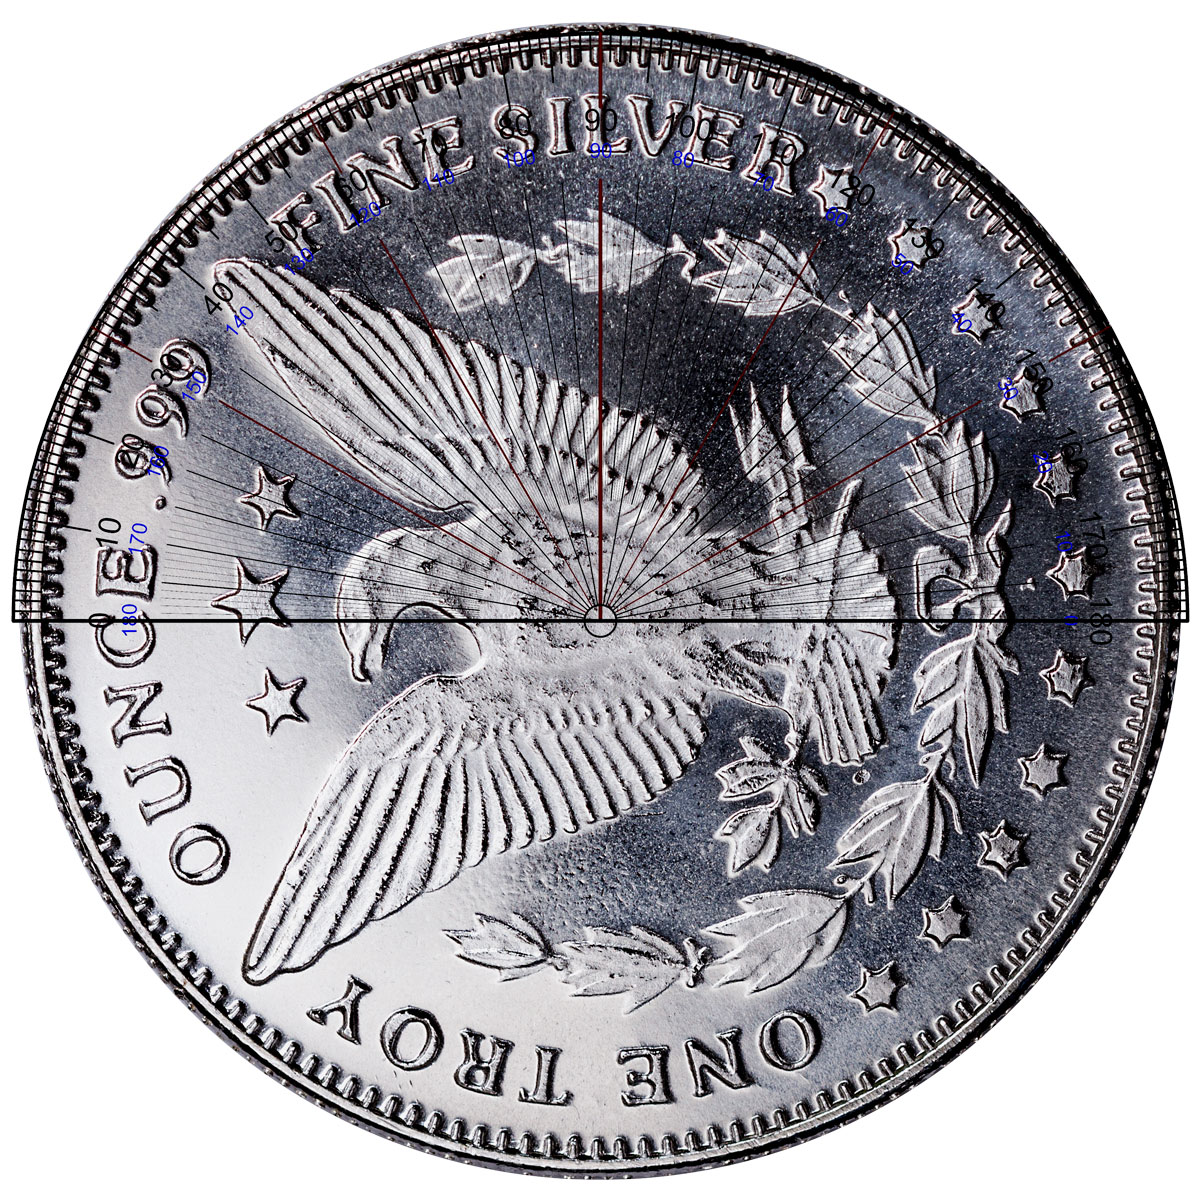 Highland Mint Morgan Dollar Design 1 Oz Silver Round 25